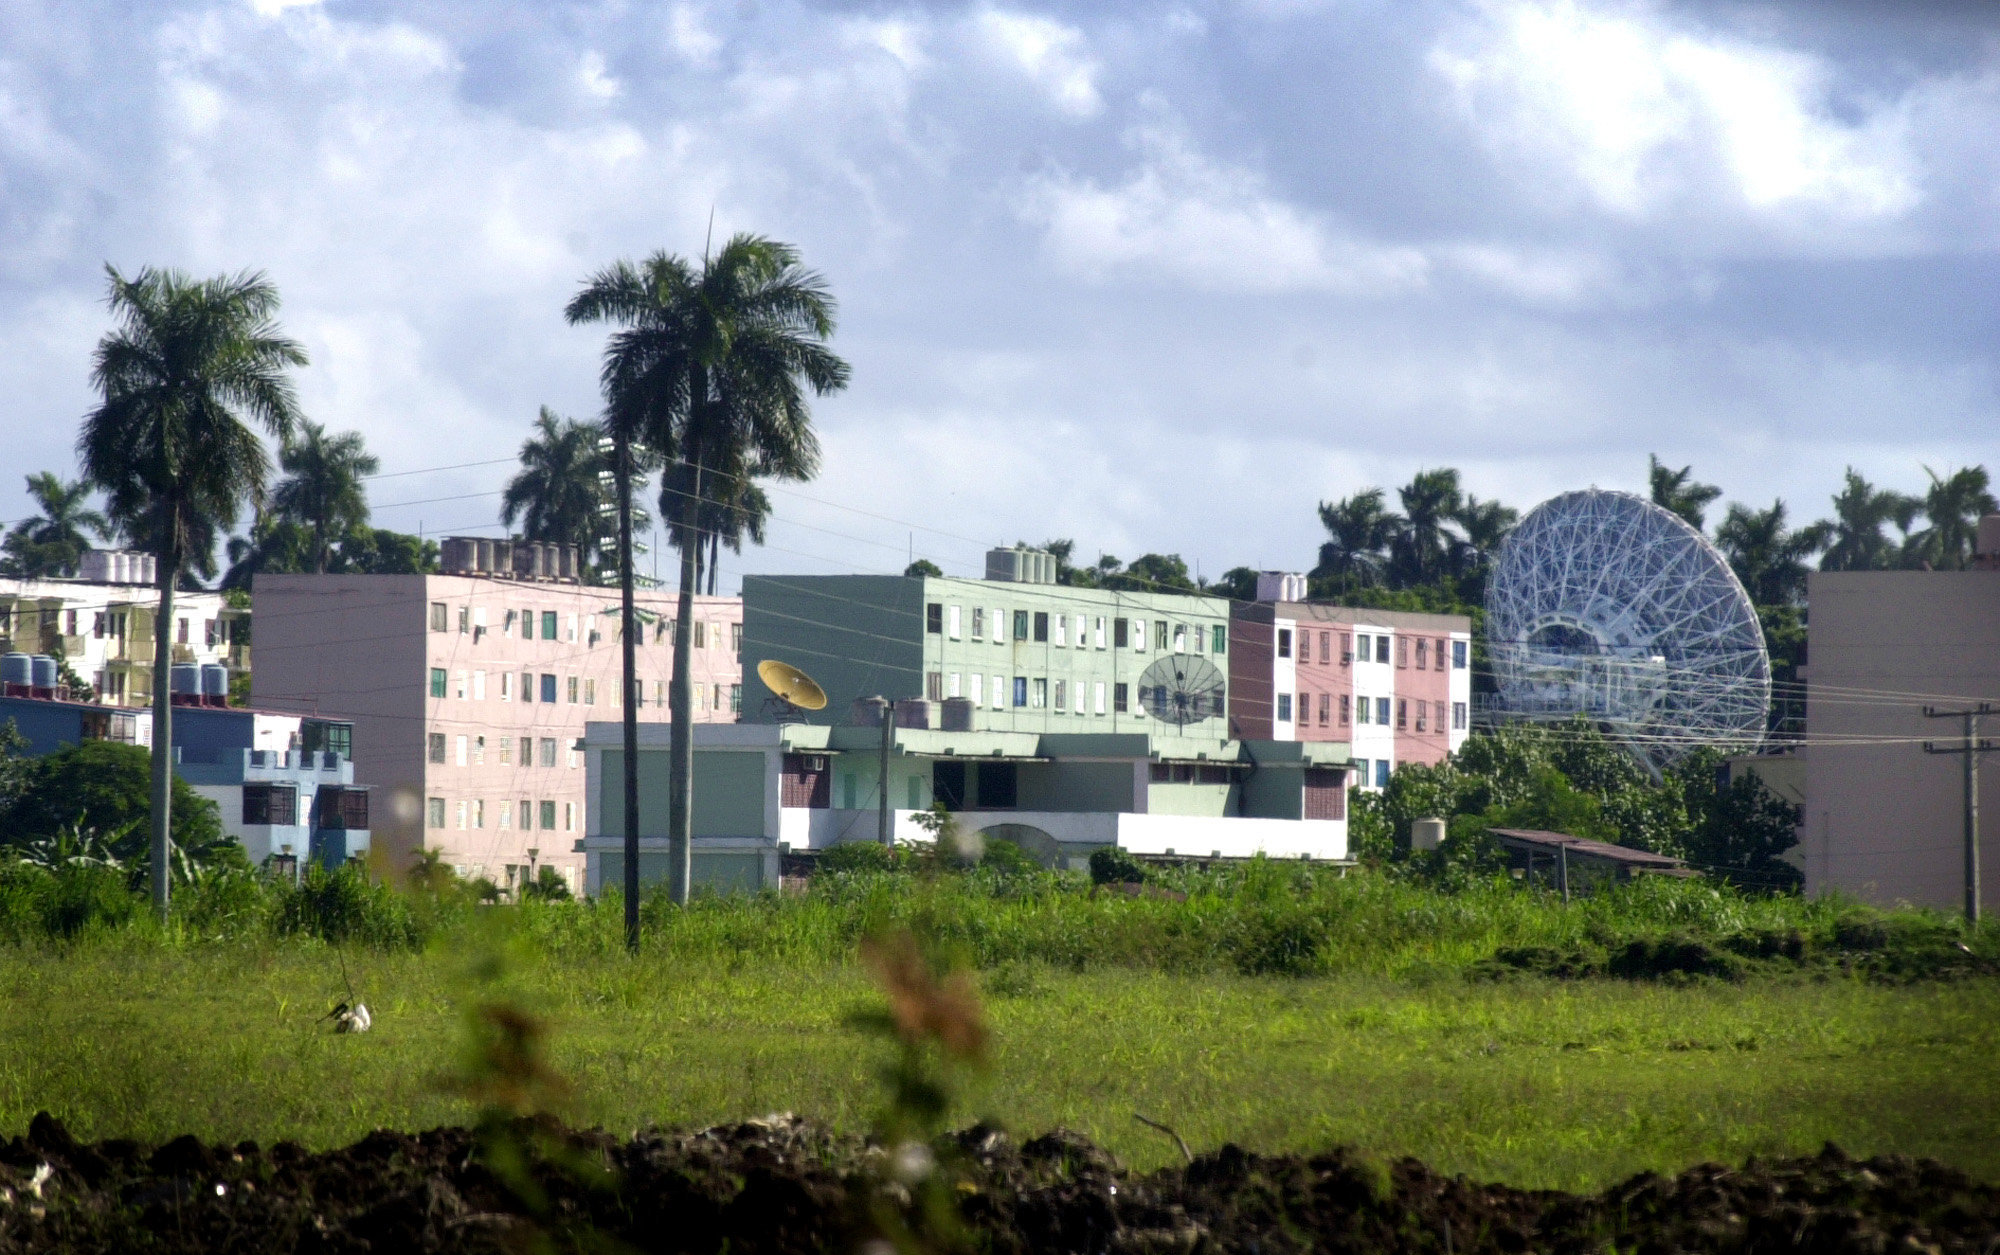 A Russian radar station is seen in Lourdes, about 12 miles south of Havana, Cuba Wednesday Oct. 17, 2001